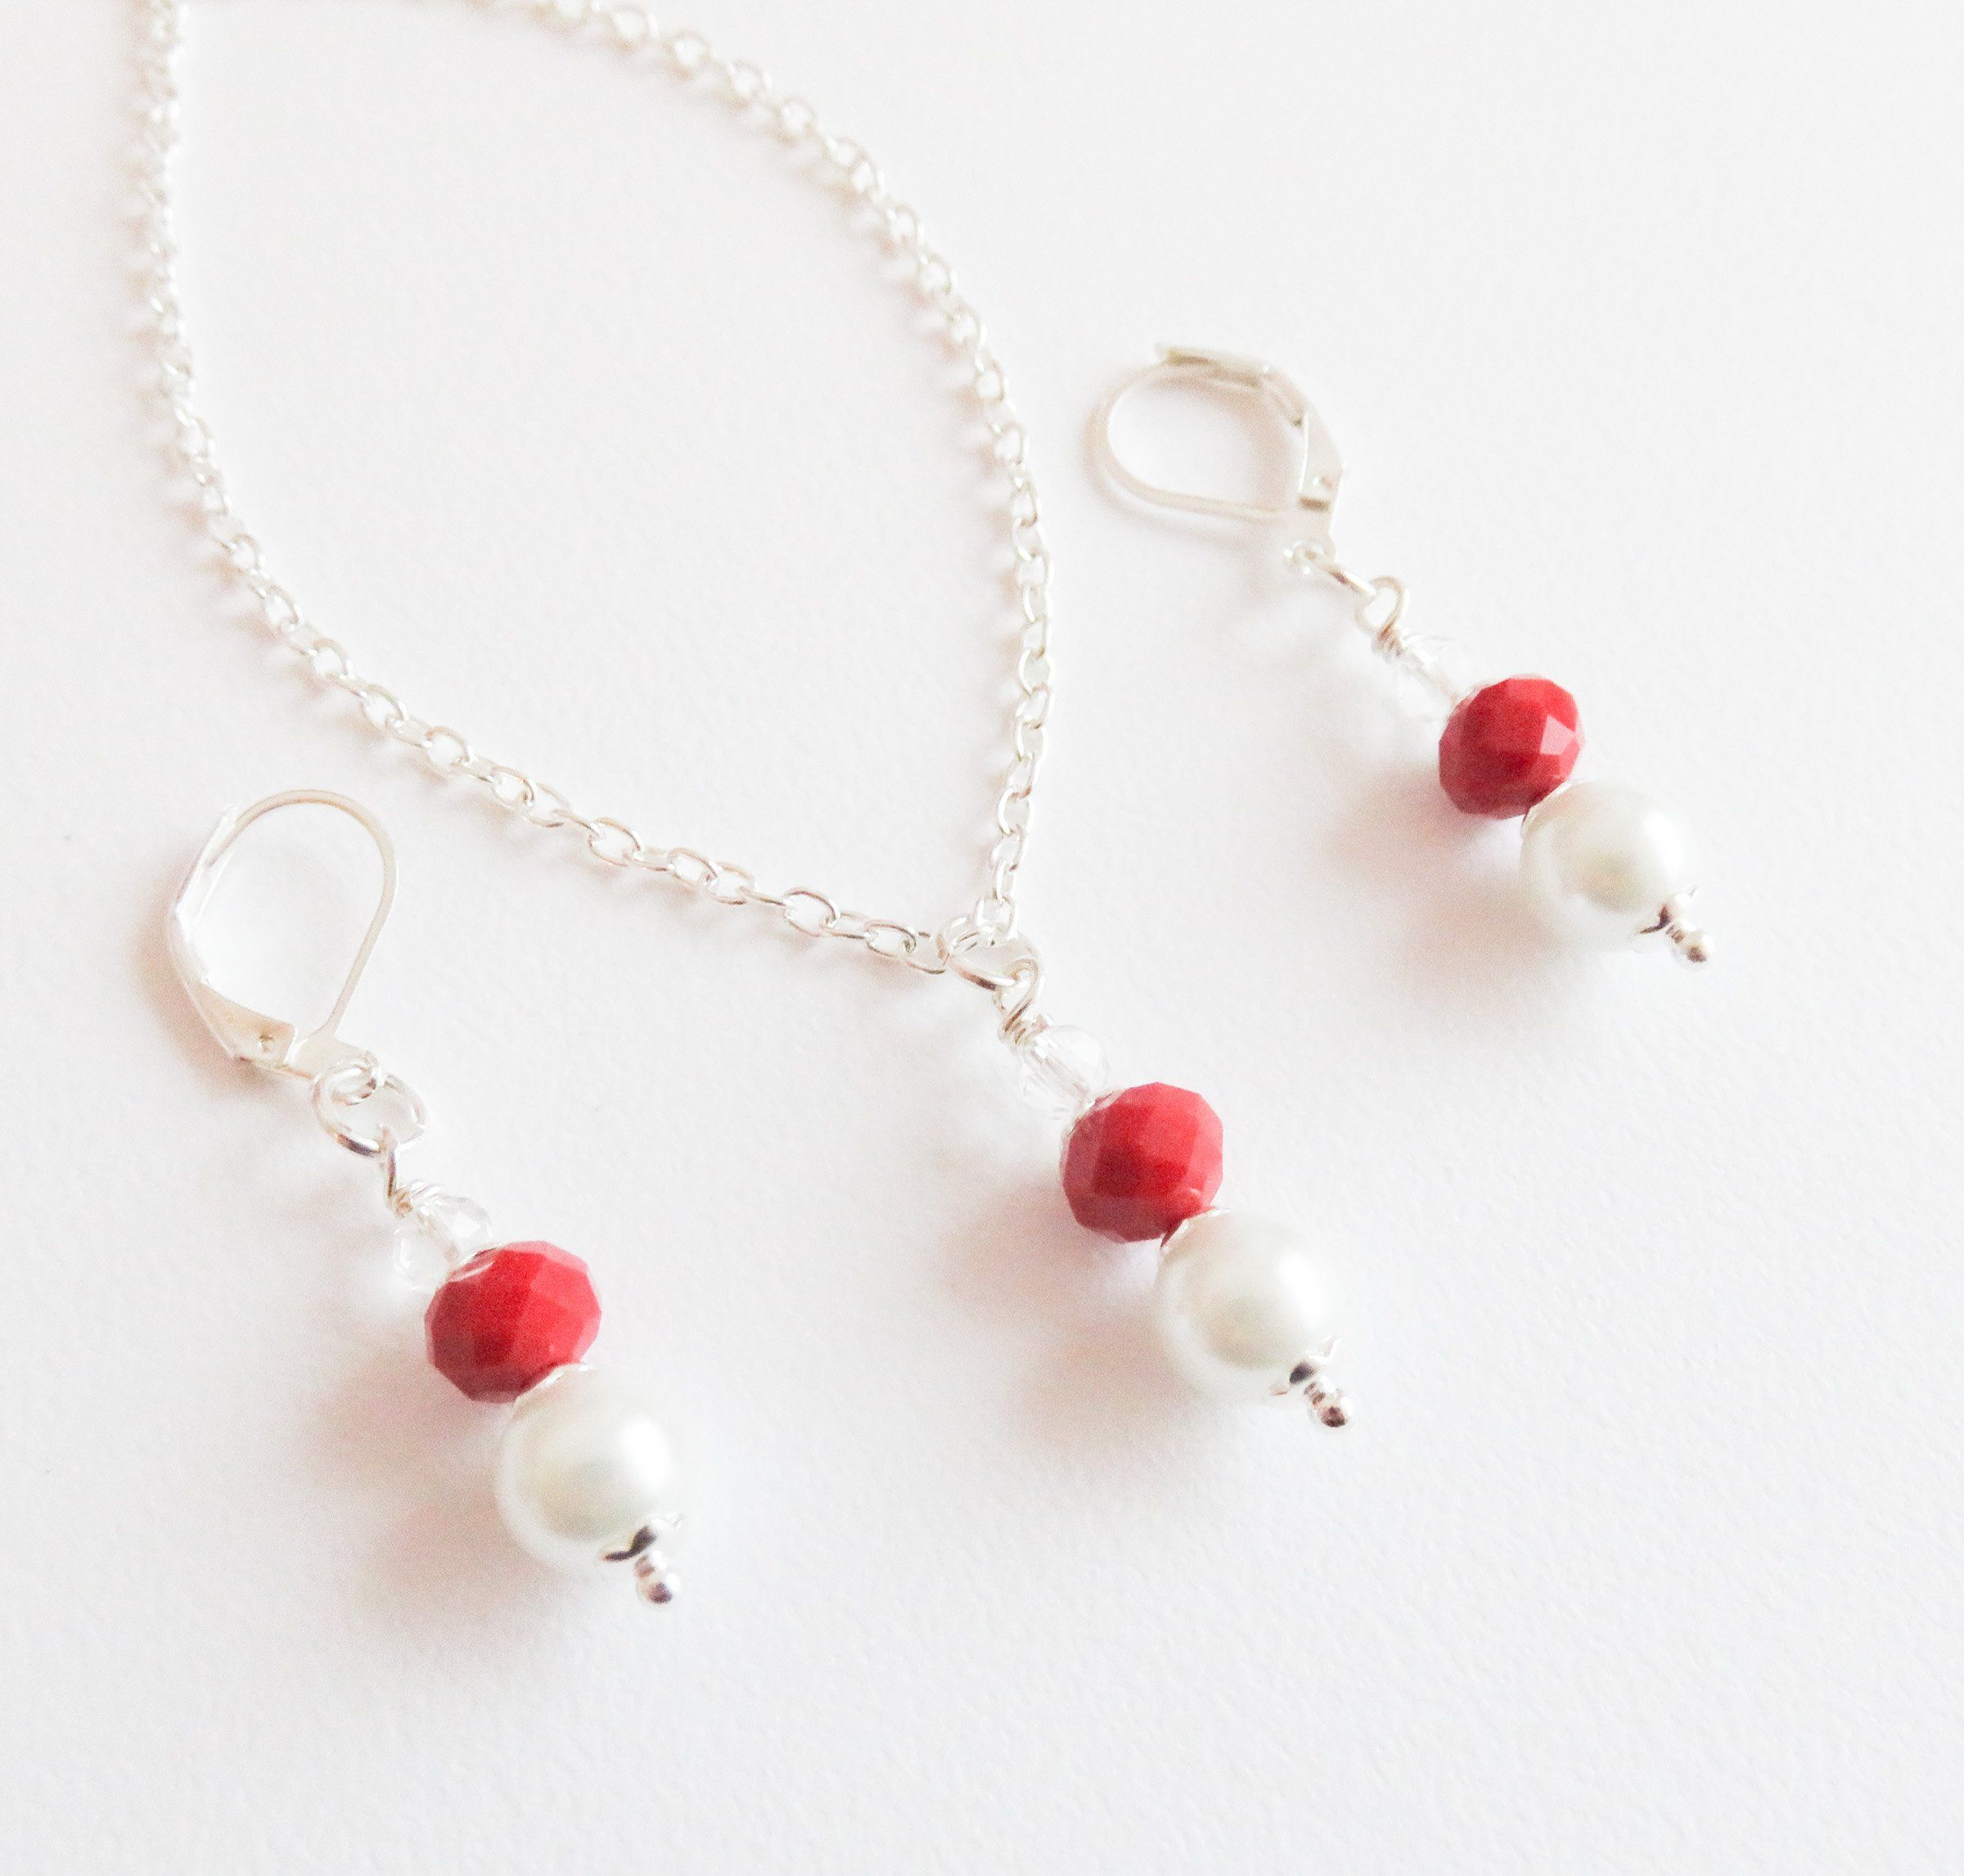 Red with white jewelry set